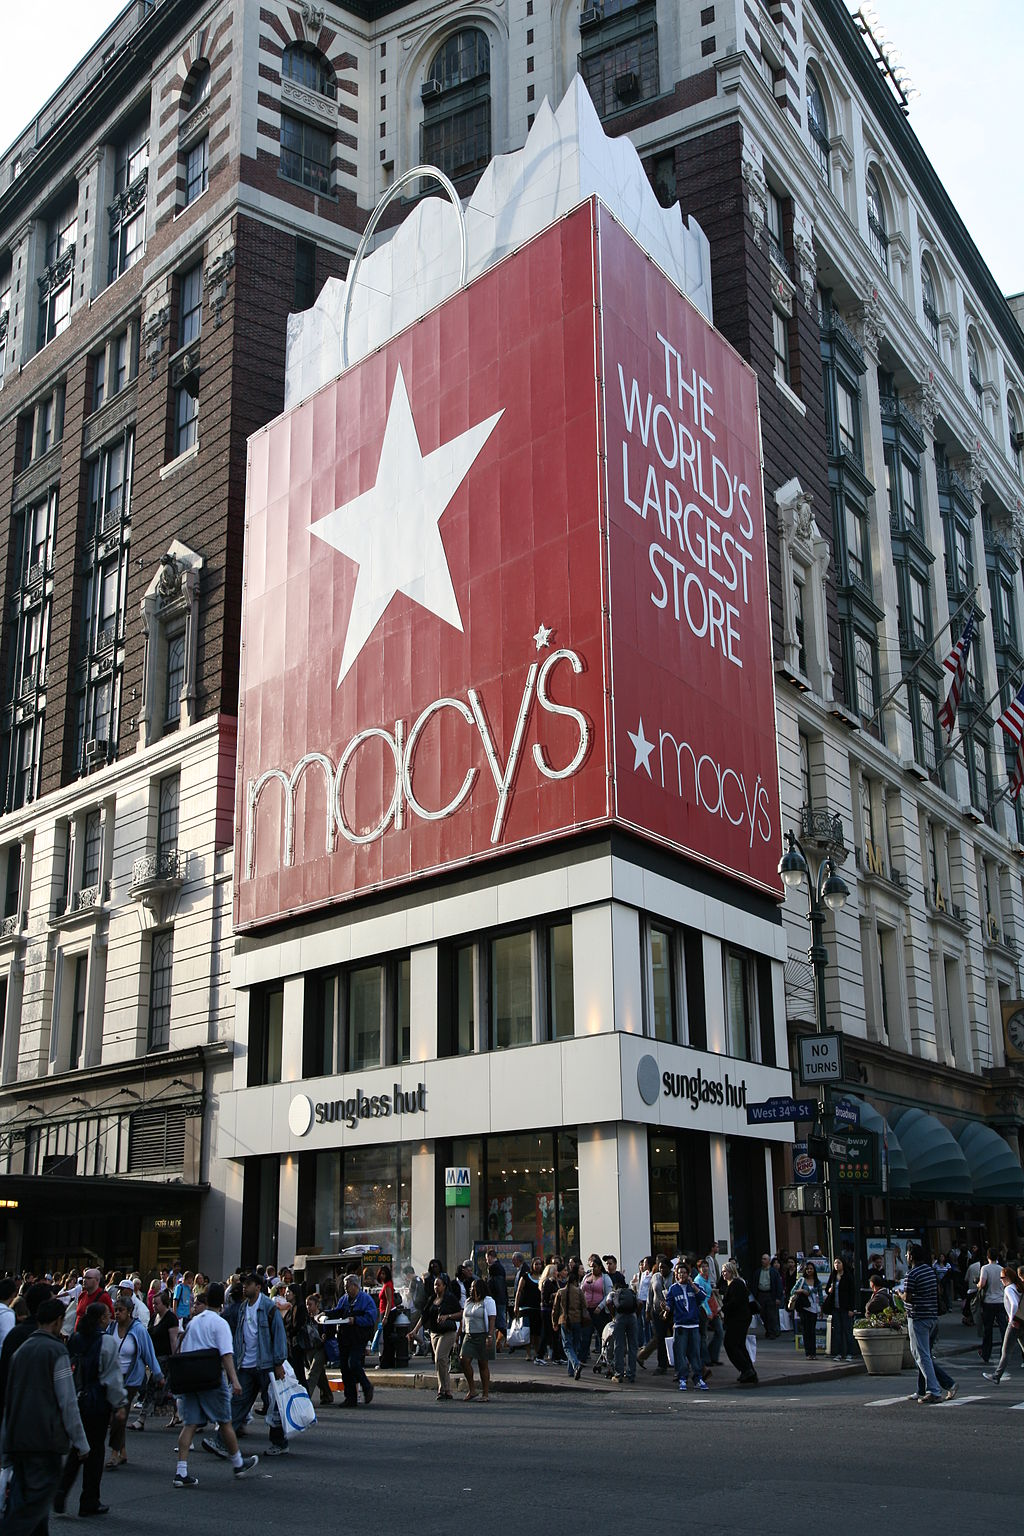 NYC is one of the Best Shopping Cities in the world ... photo by CC user Daniel Schwen on wikimedia commons